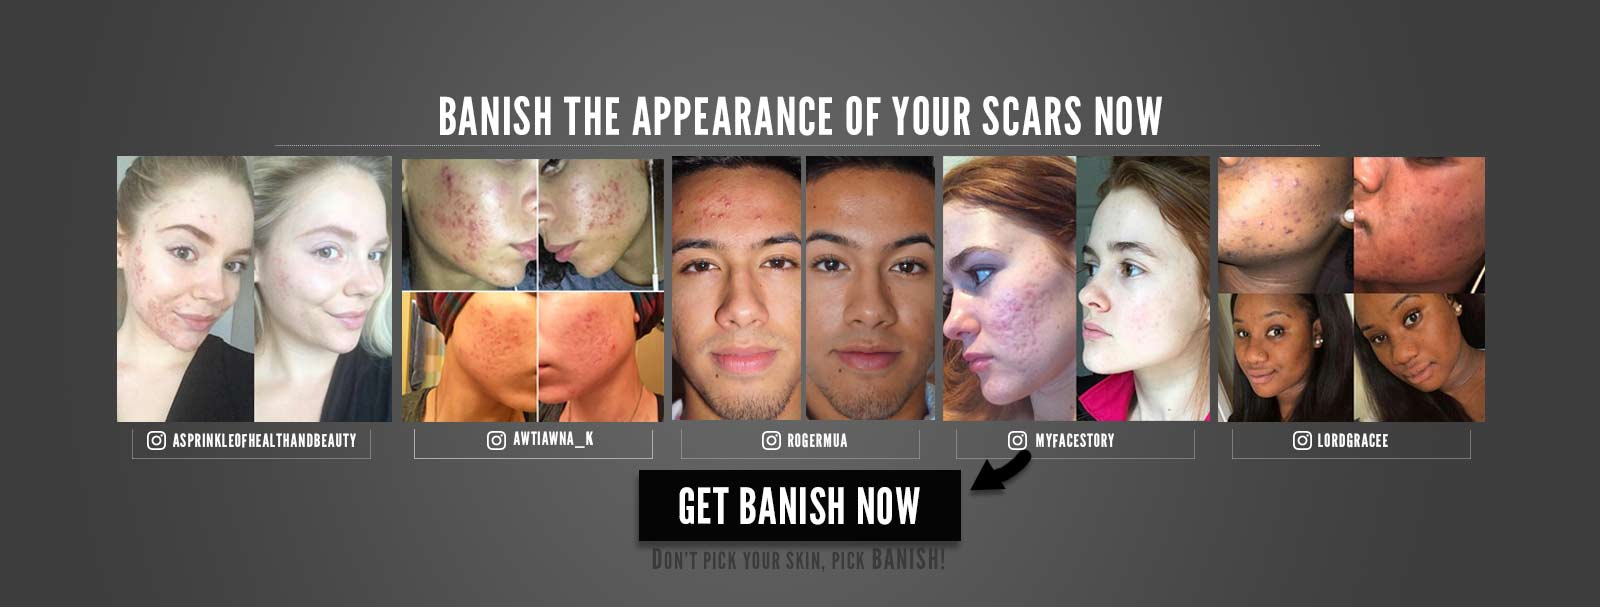 banish-acne-scars-home-banner-disclaimer.jpg